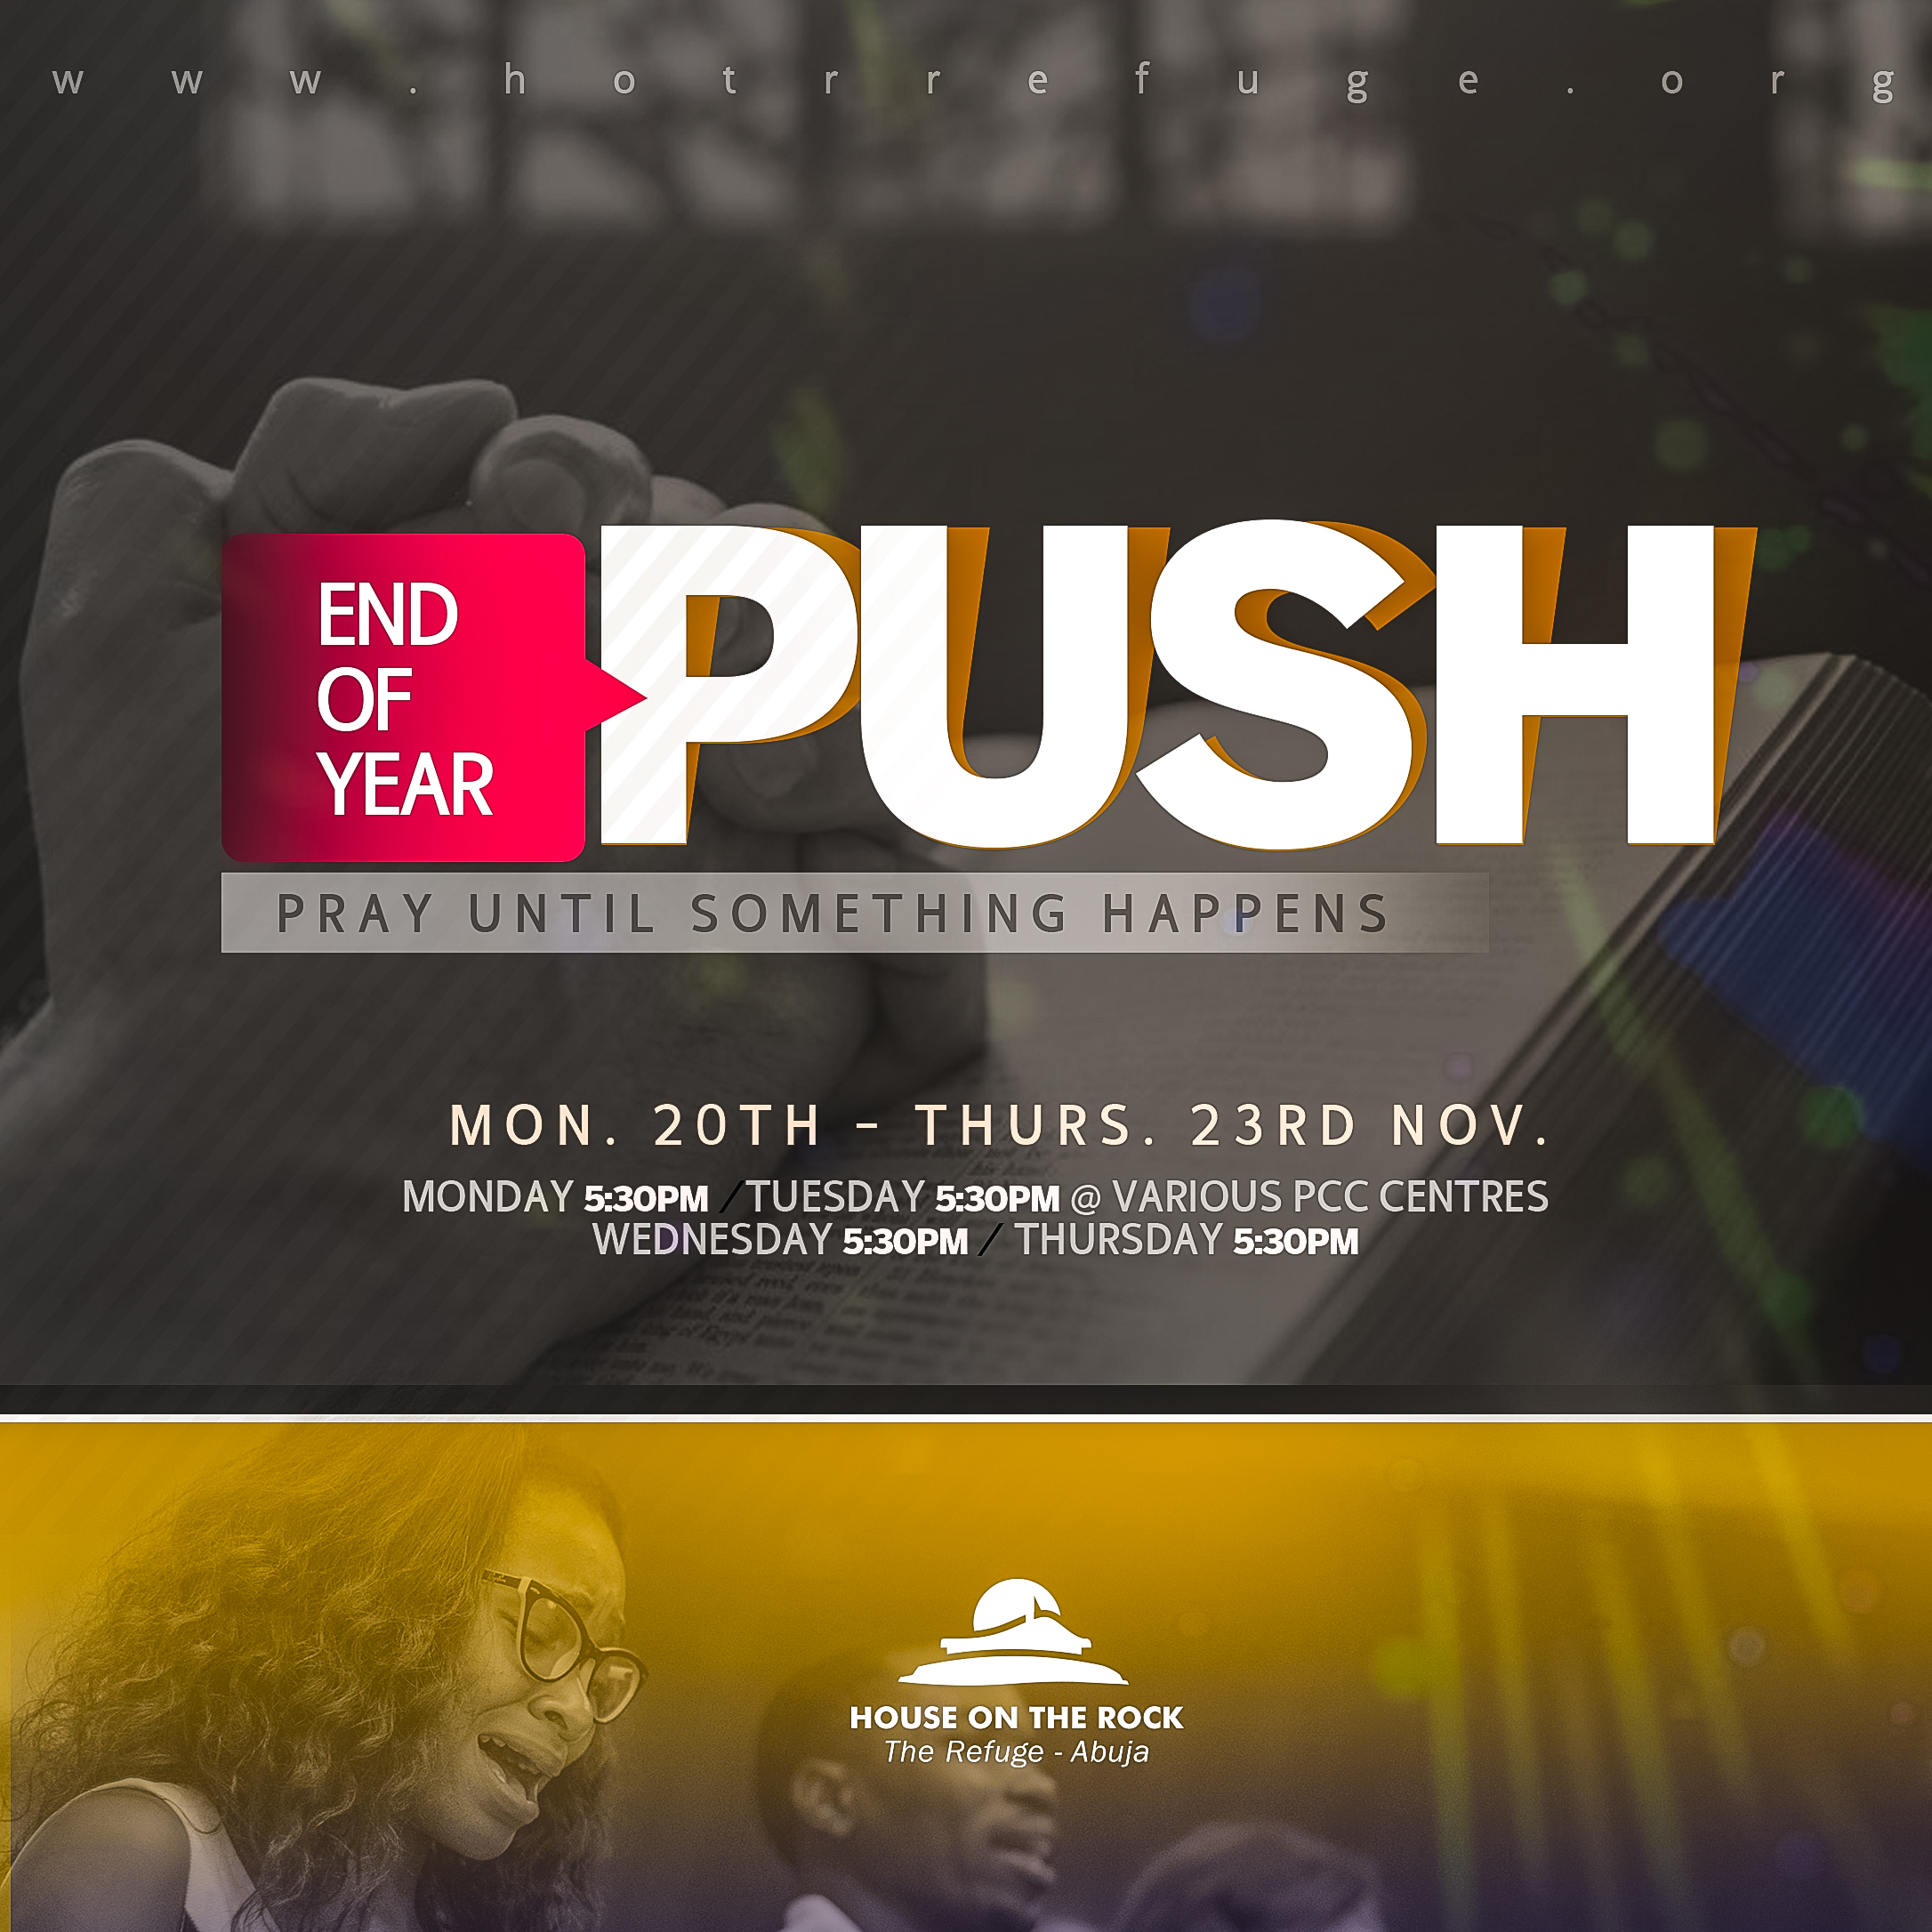 END OF THE YEAR PUSH 2017